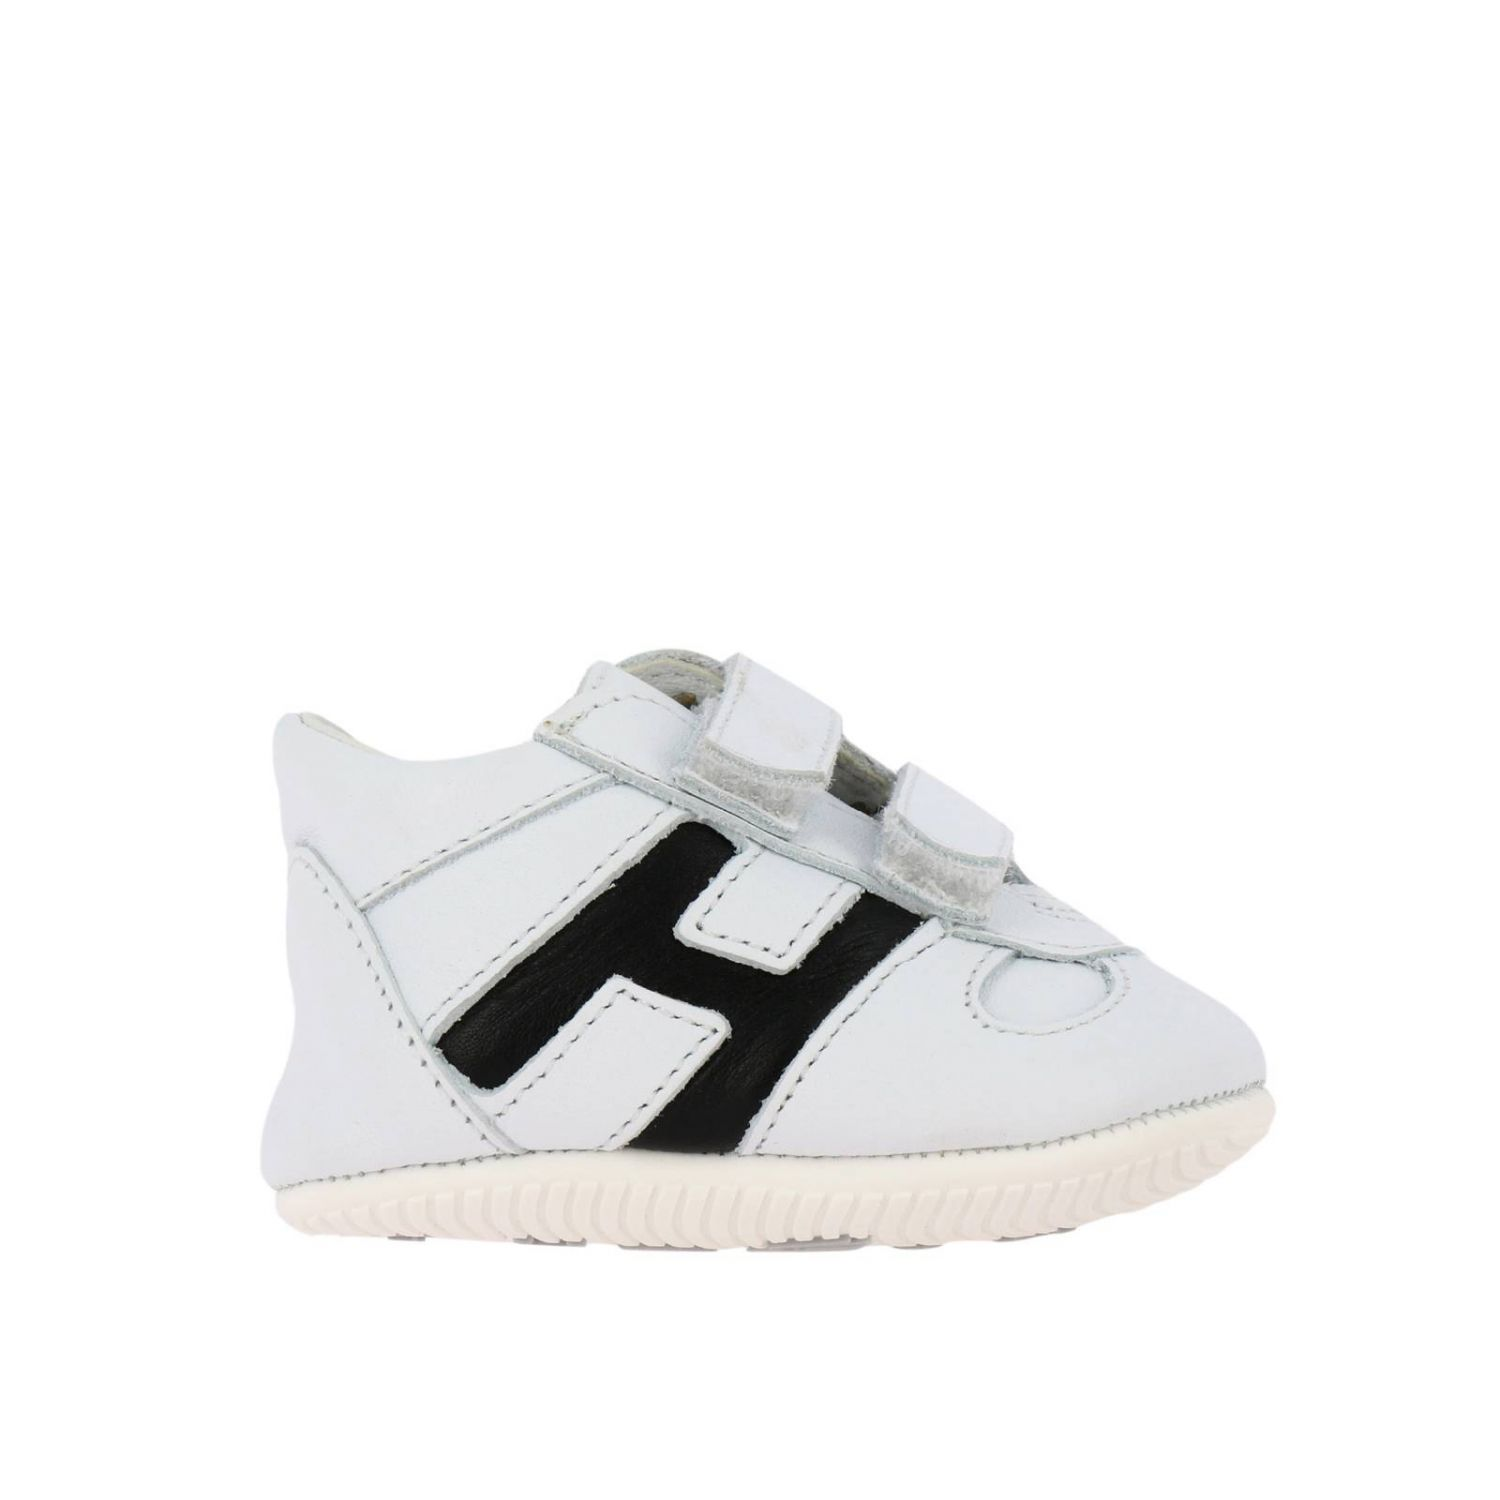 Olympia Hogan sneakers in leather with Velcro straps white 1